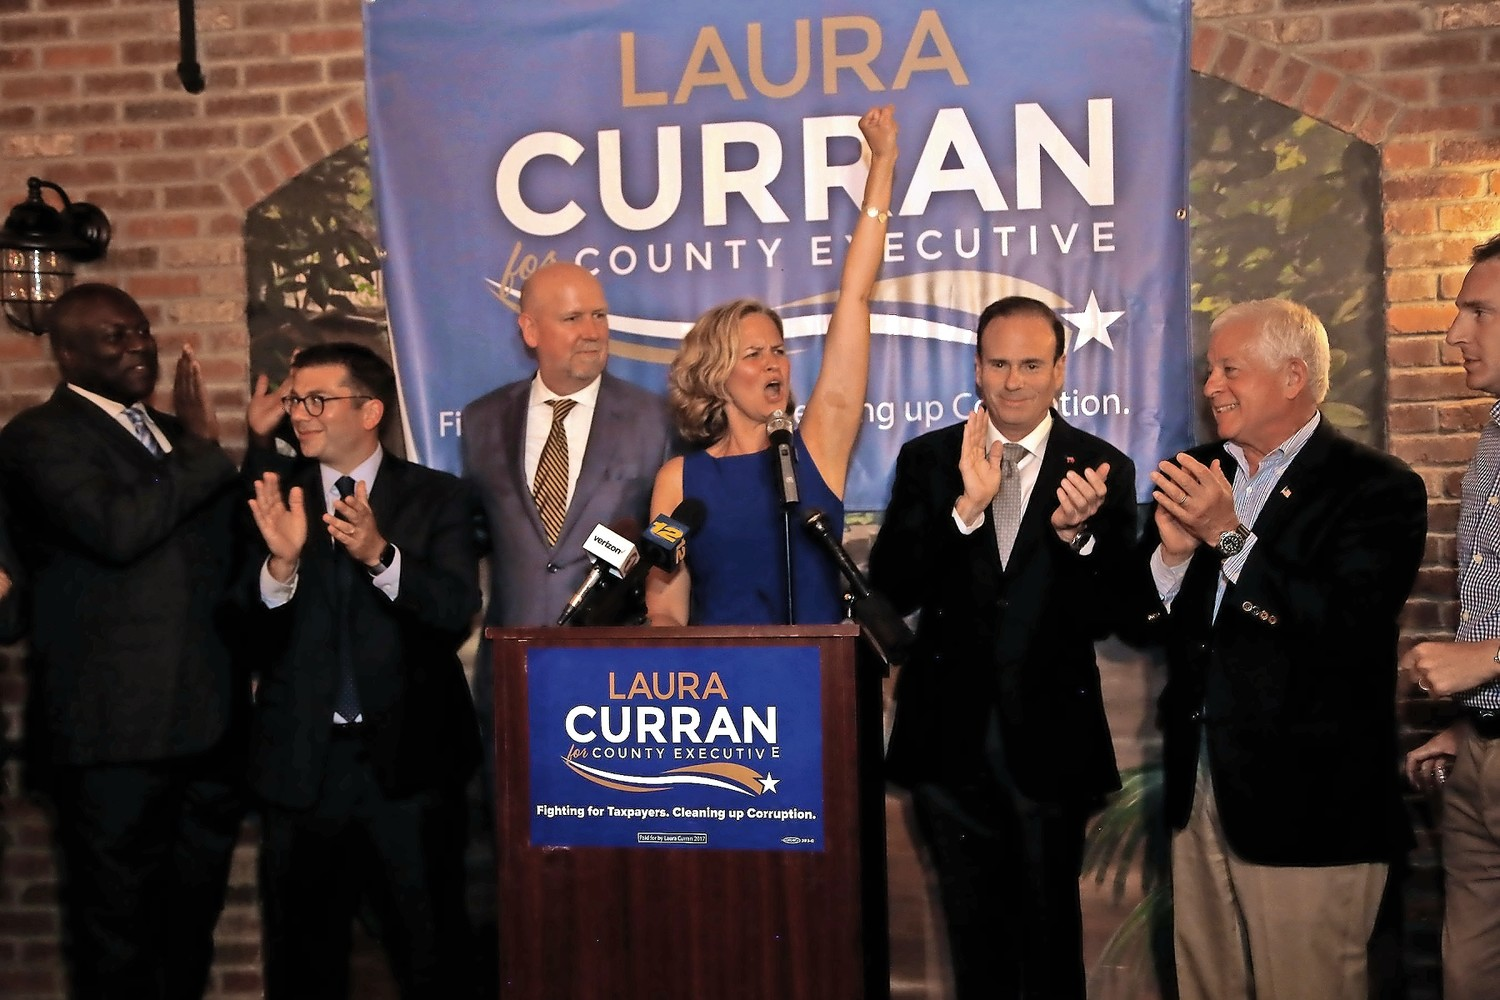 Laura Curran celebrated her win in the Democratic primary for county executive at Nawlins Seafood Company in Freeport.